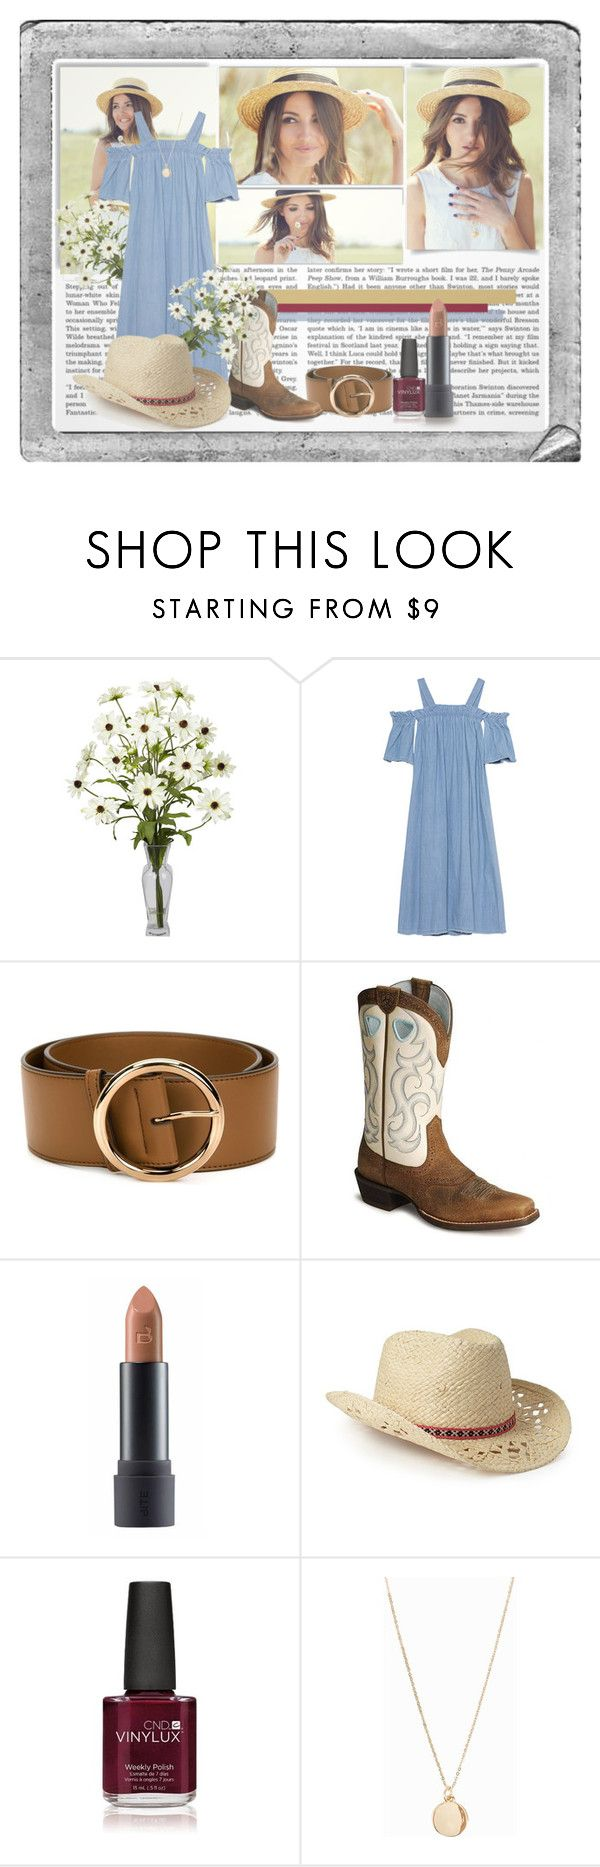 """""""Cowboy-girl"""" by karimaputri on Polyvore featuring Polaroid, White Label, SJYP, STELLA McCARTNEY, Ariat, Bite, Forever 21, Creative and NLY Accessories"""